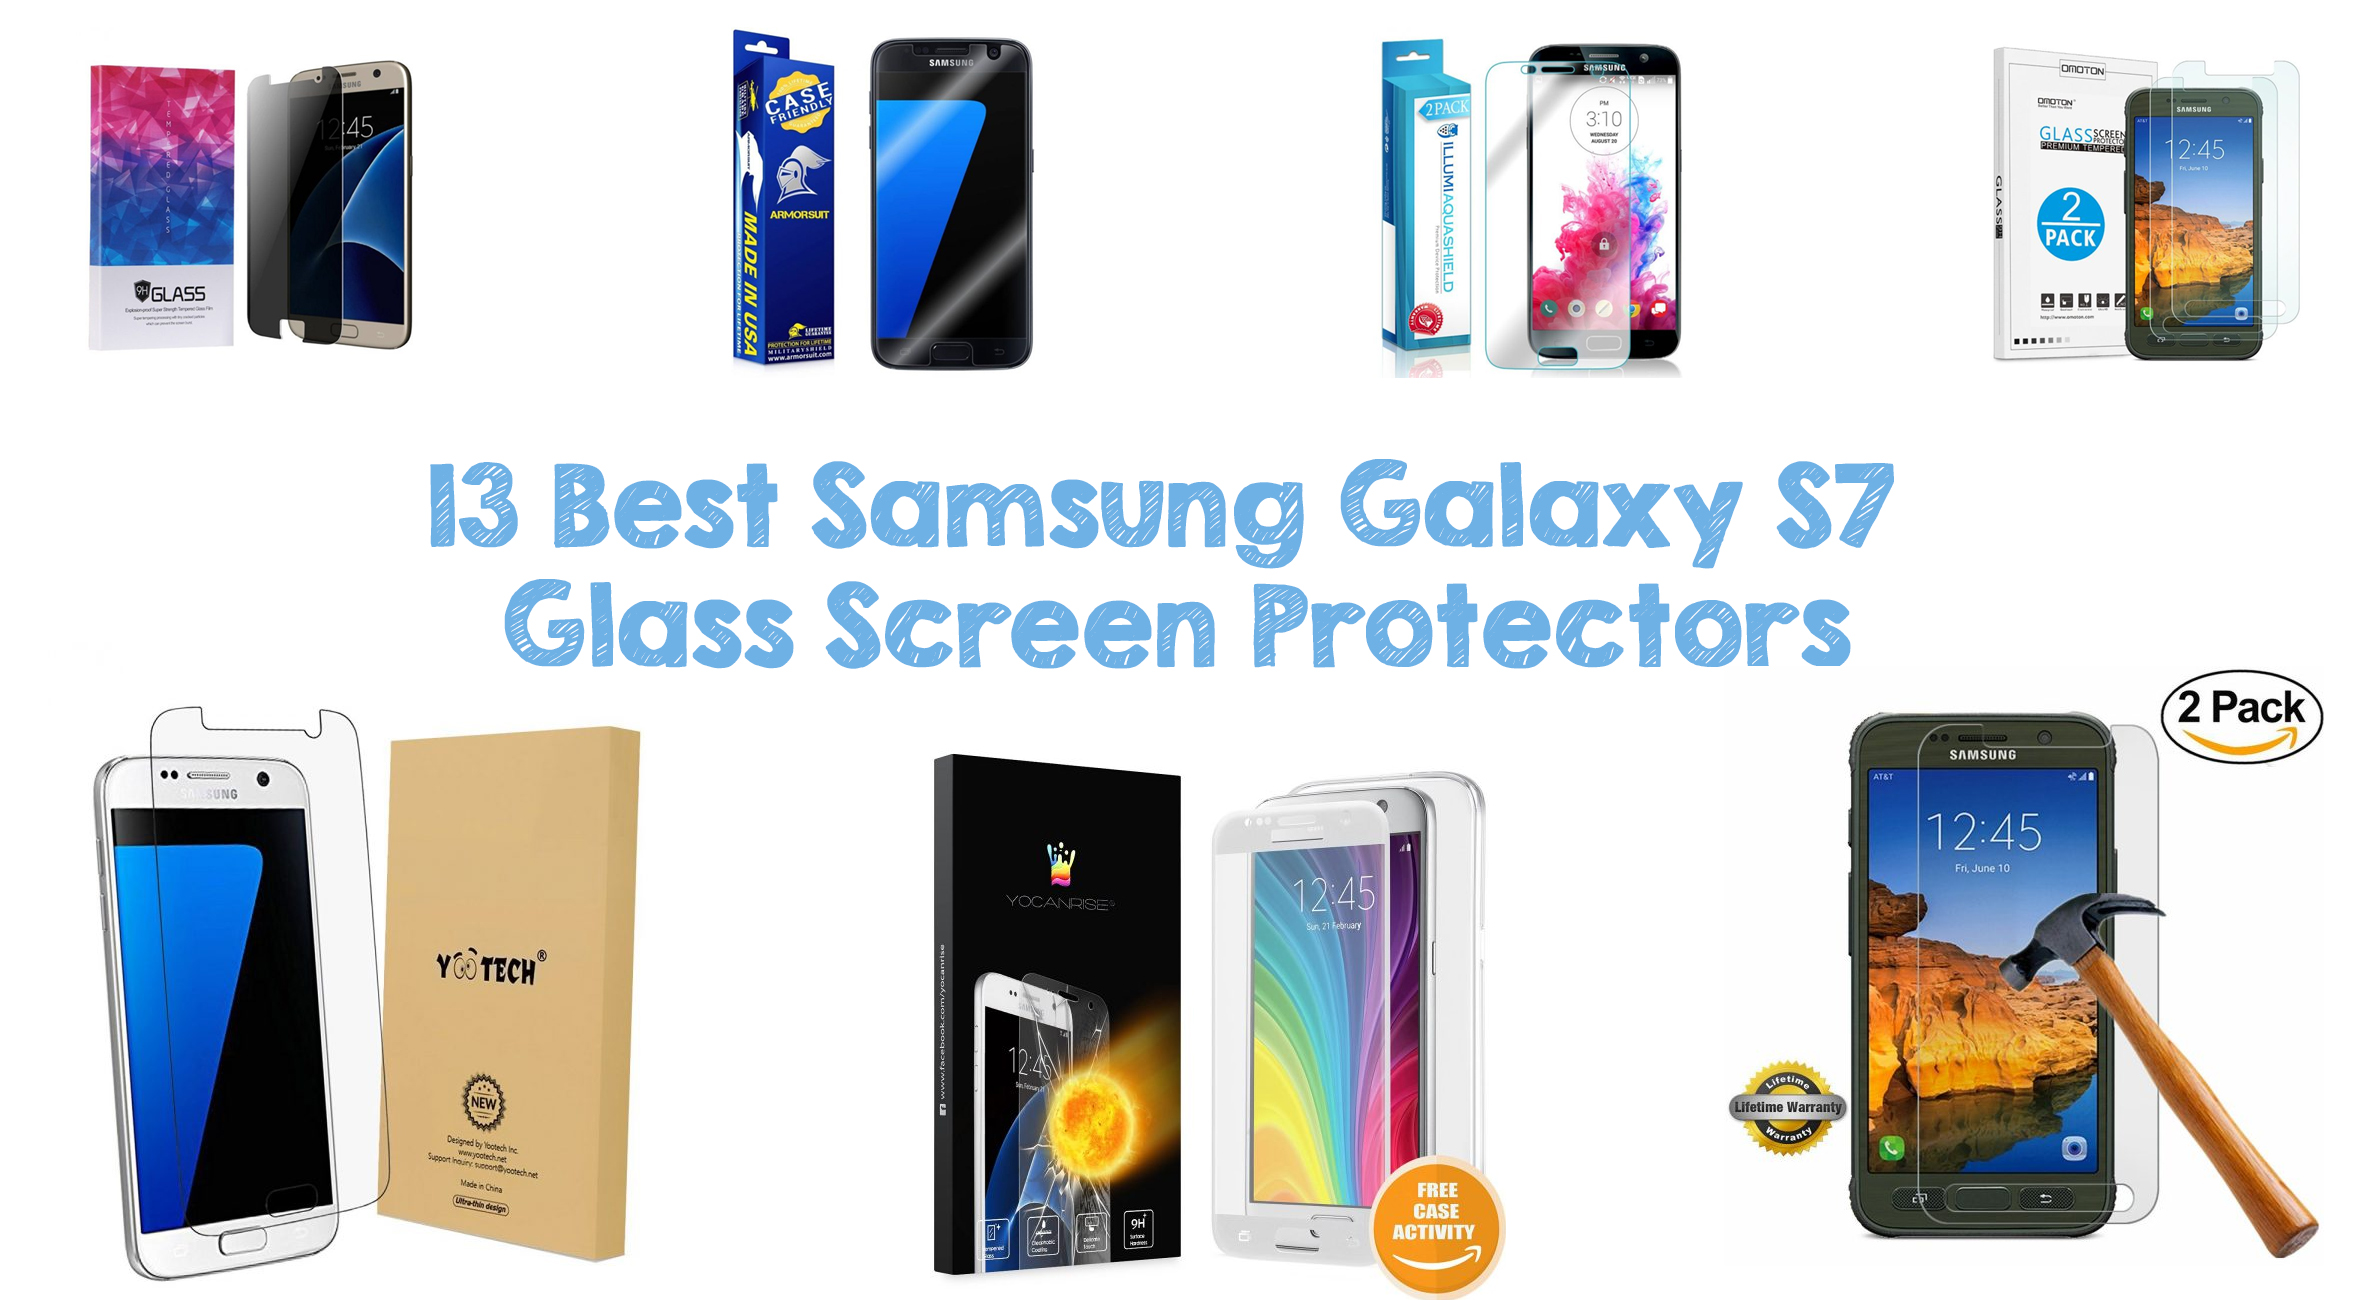 13 Best Samsung Galaxy S7 Glass Screen Protectors